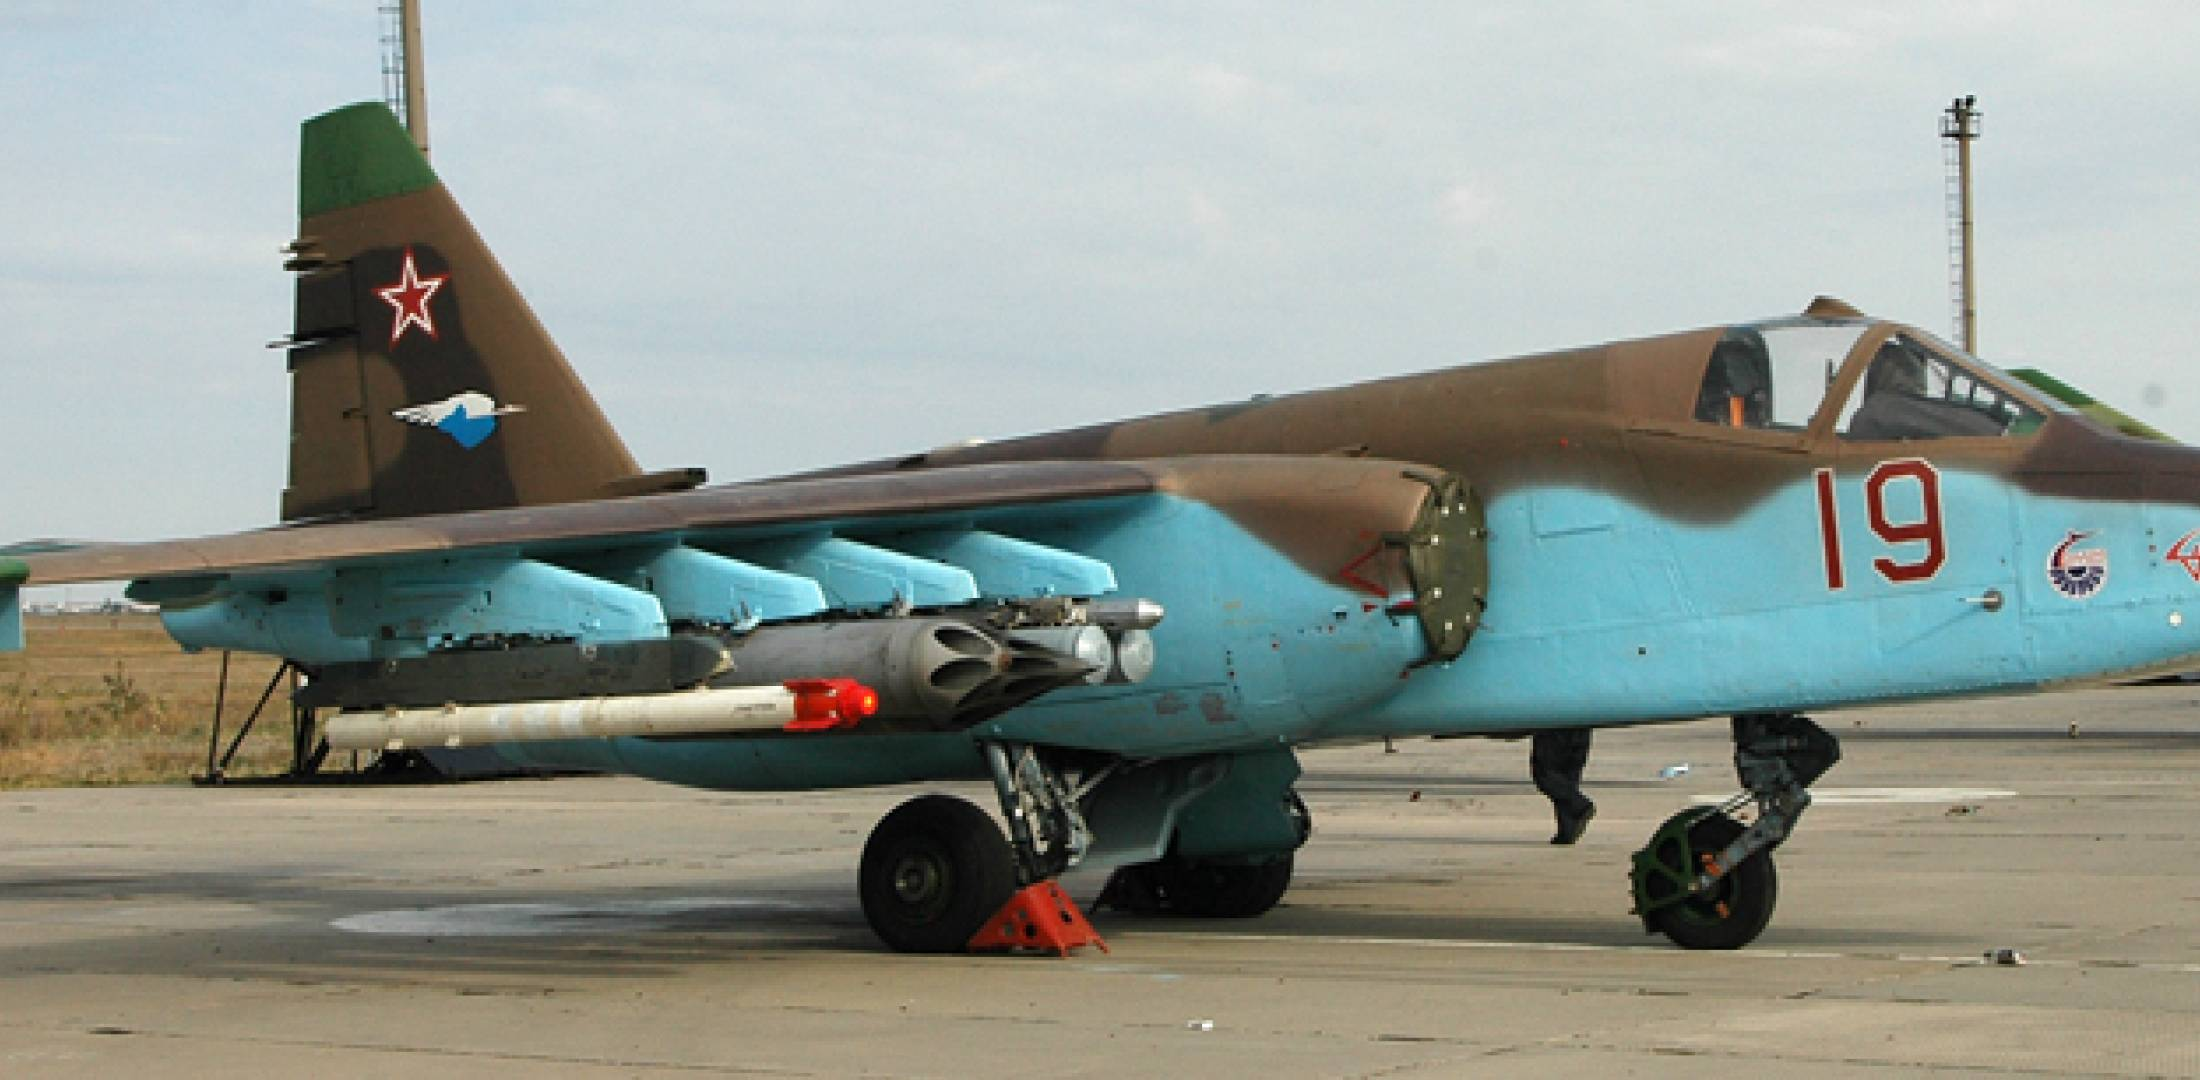 The Russian air force has plans to upgrade all of its Sukhoi Su-25 fleet–now